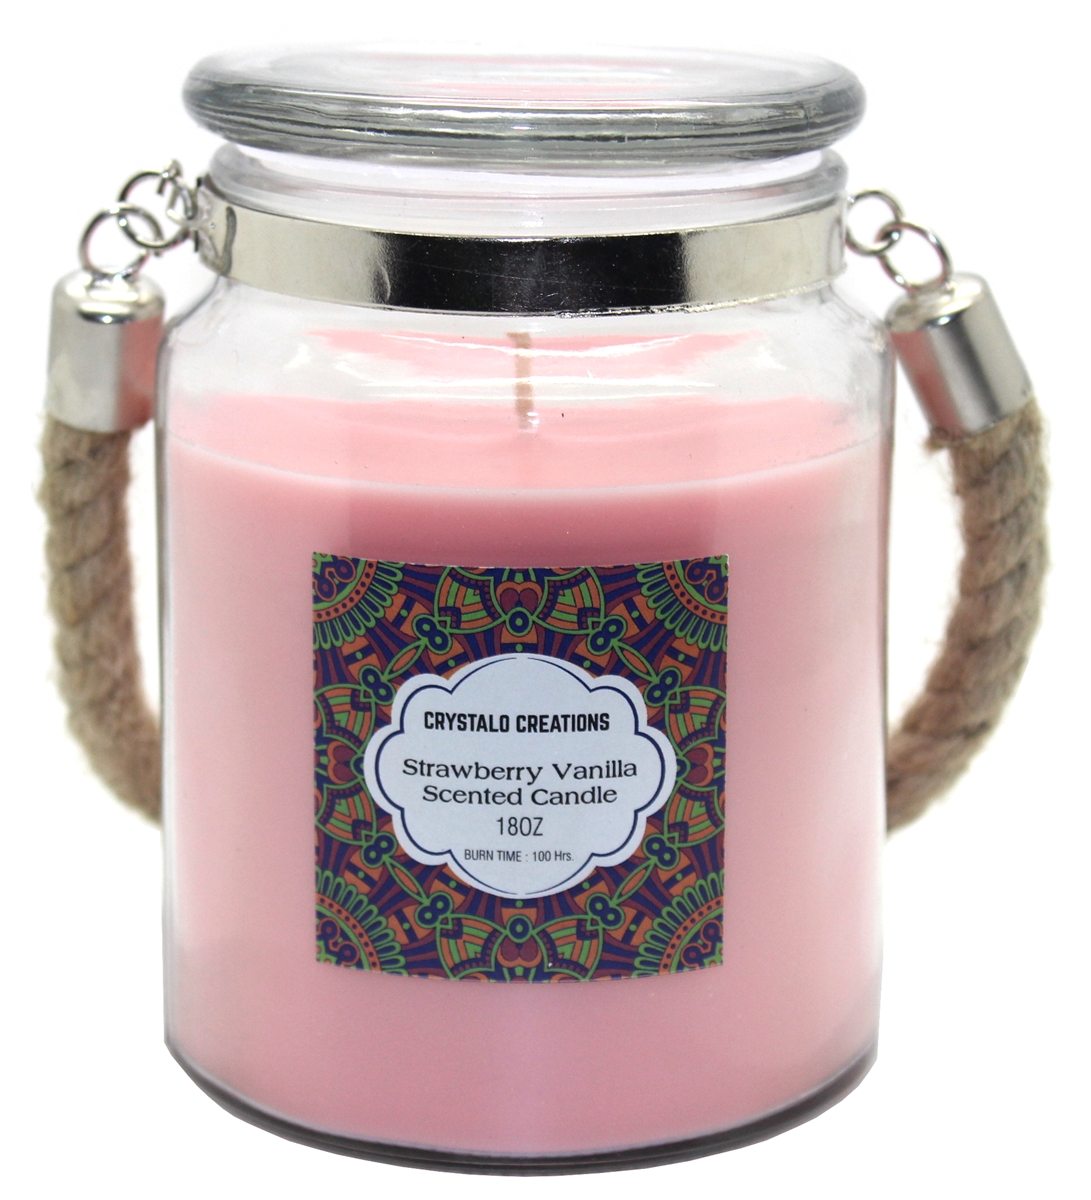 Crystalo Creations Strawberry Vanilla Scented Candle With Rope Handle 18 Ounce